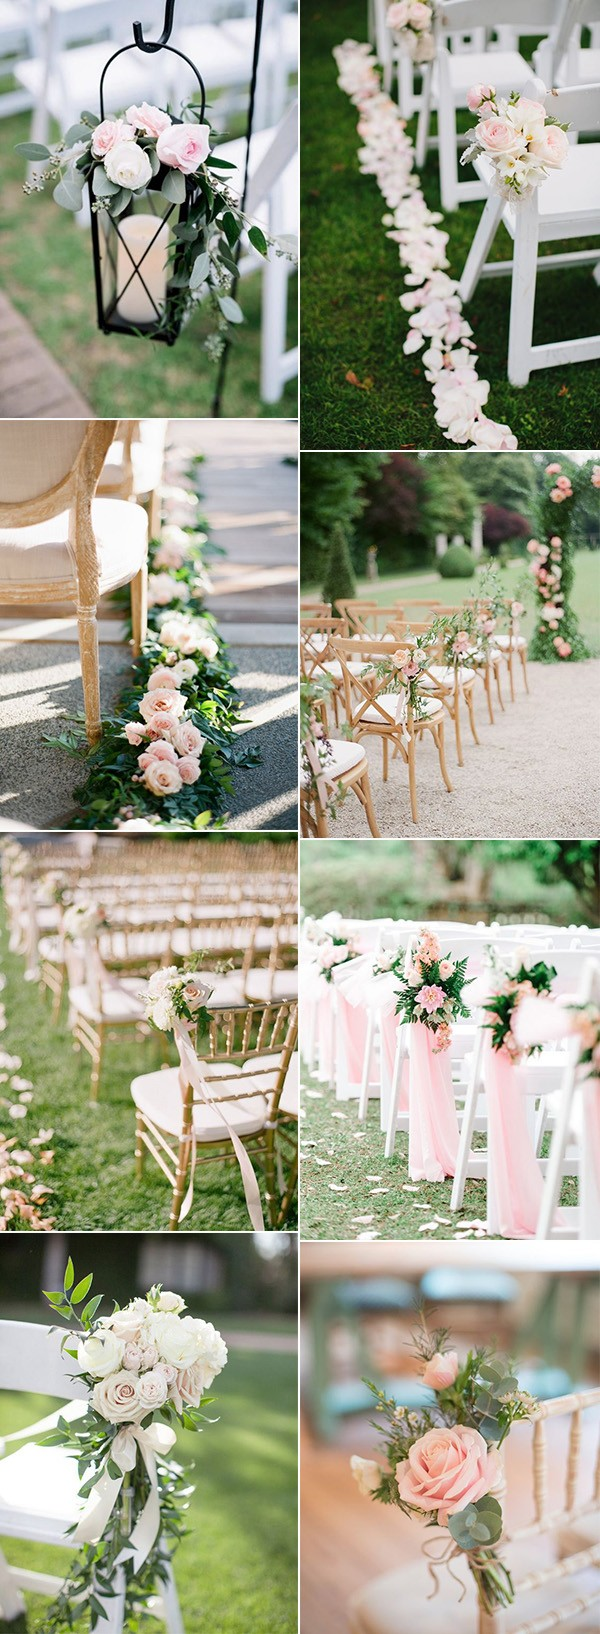 elegant blush pink wedding aisle decoration ideas